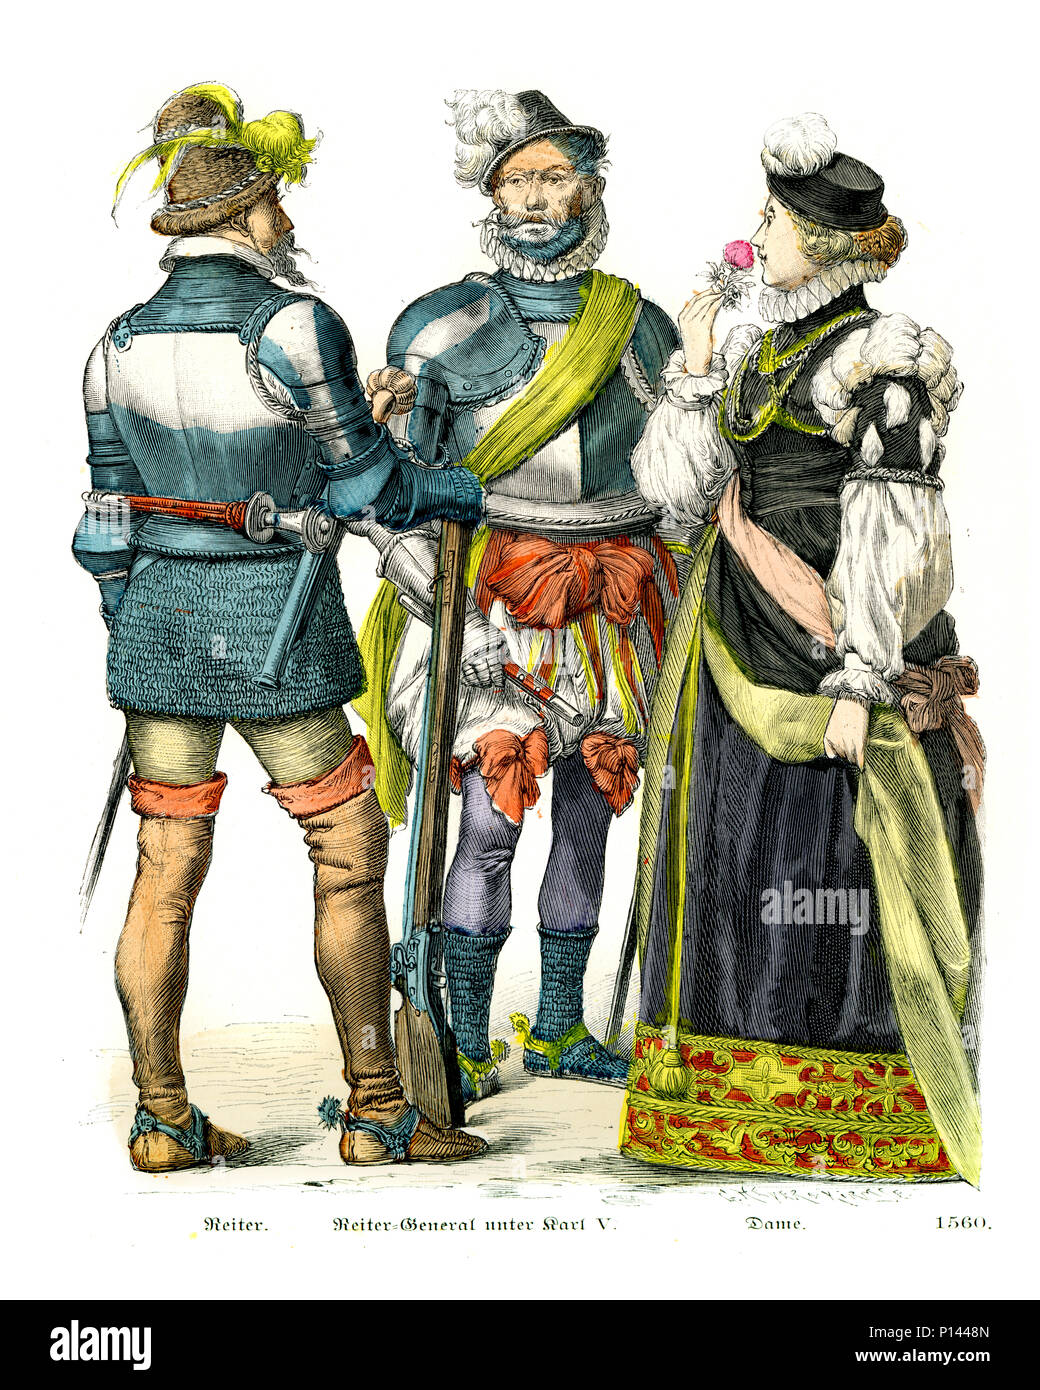 Vintage engraving of History of Fashion, Costumes of Germany 16th Century. Soldier and Cavalry General and Lady, 1560 - Stock Image